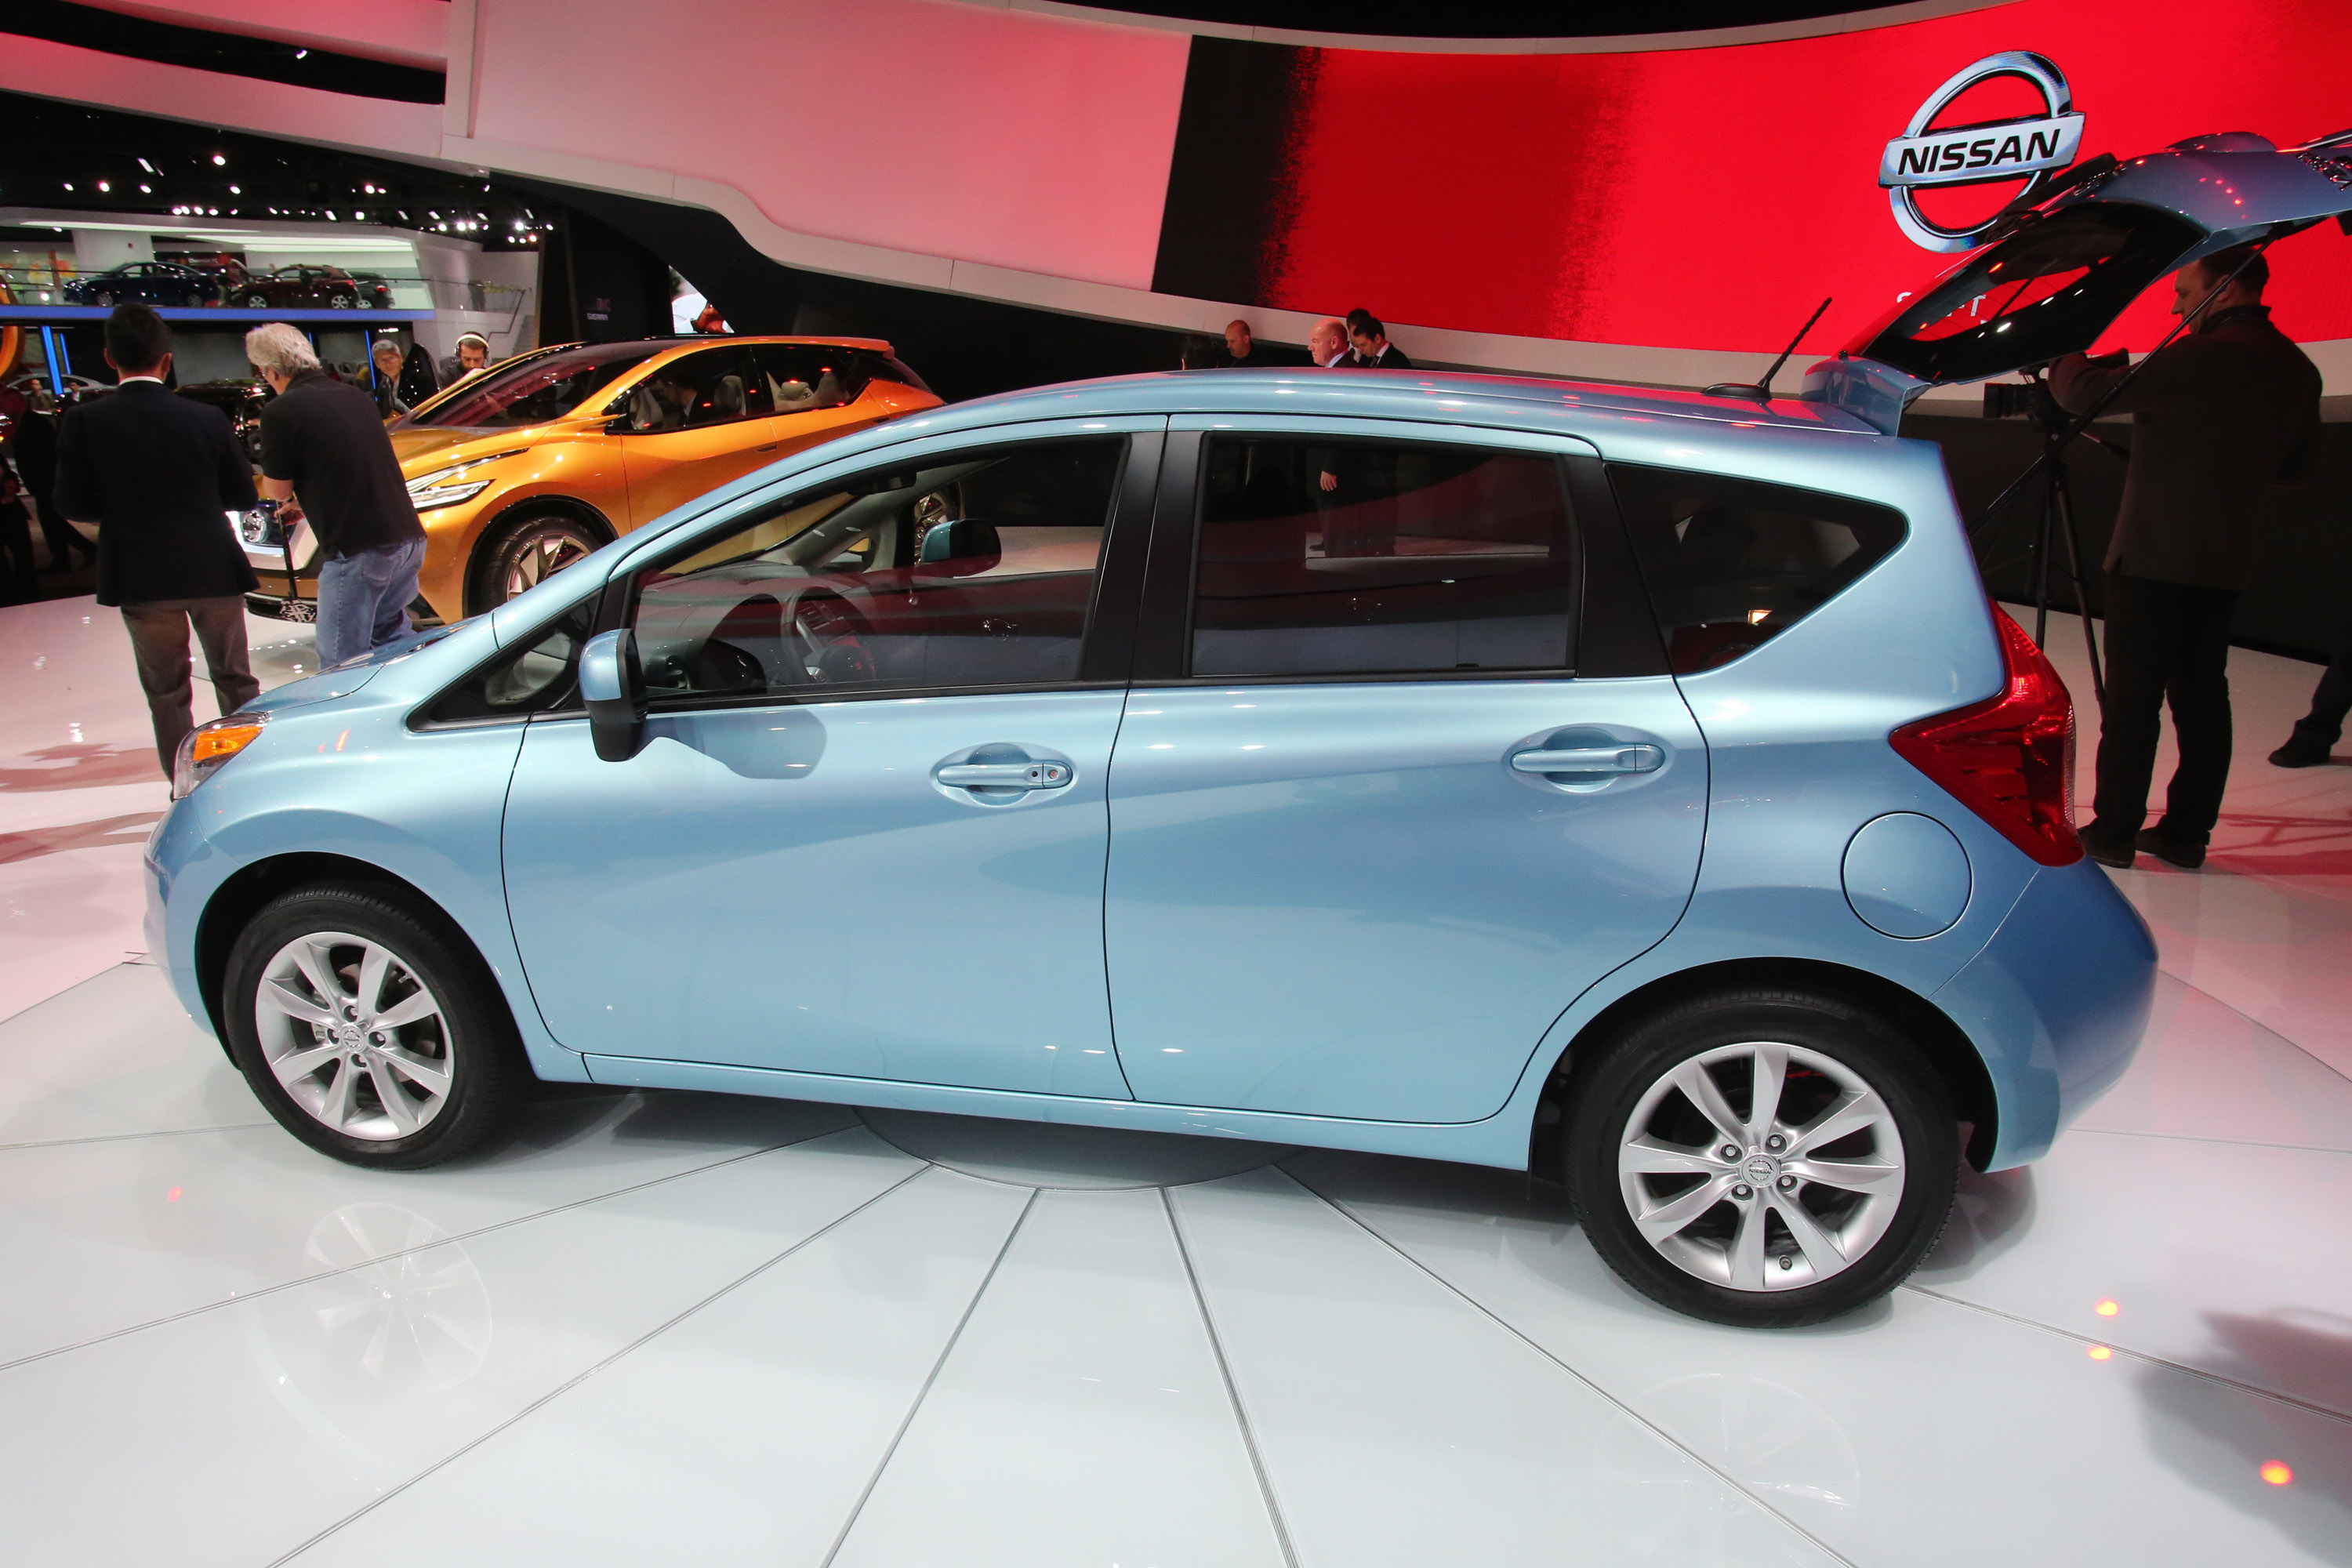 new nissan note 2013 car specs price image gallery video html autos weblog. Black Bedroom Furniture Sets. Home Design Ideas